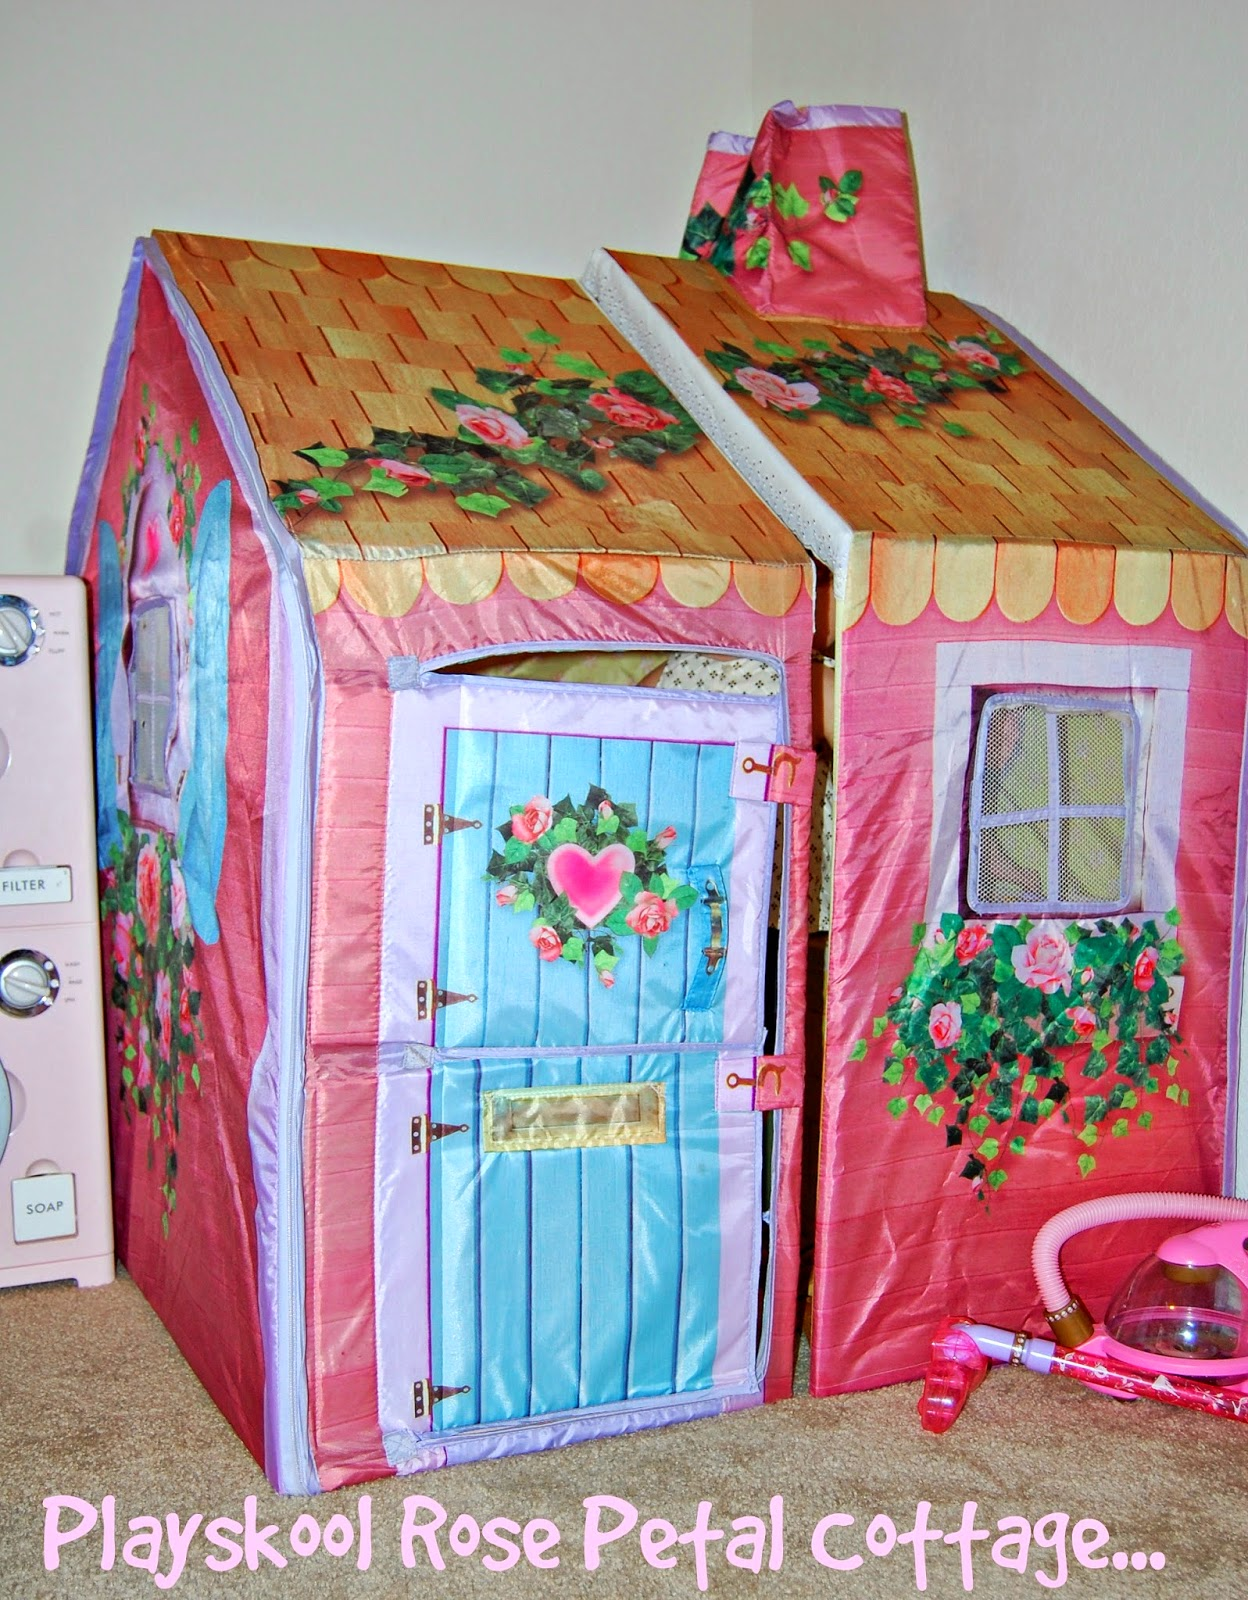 playskool rose petal cottage instructions